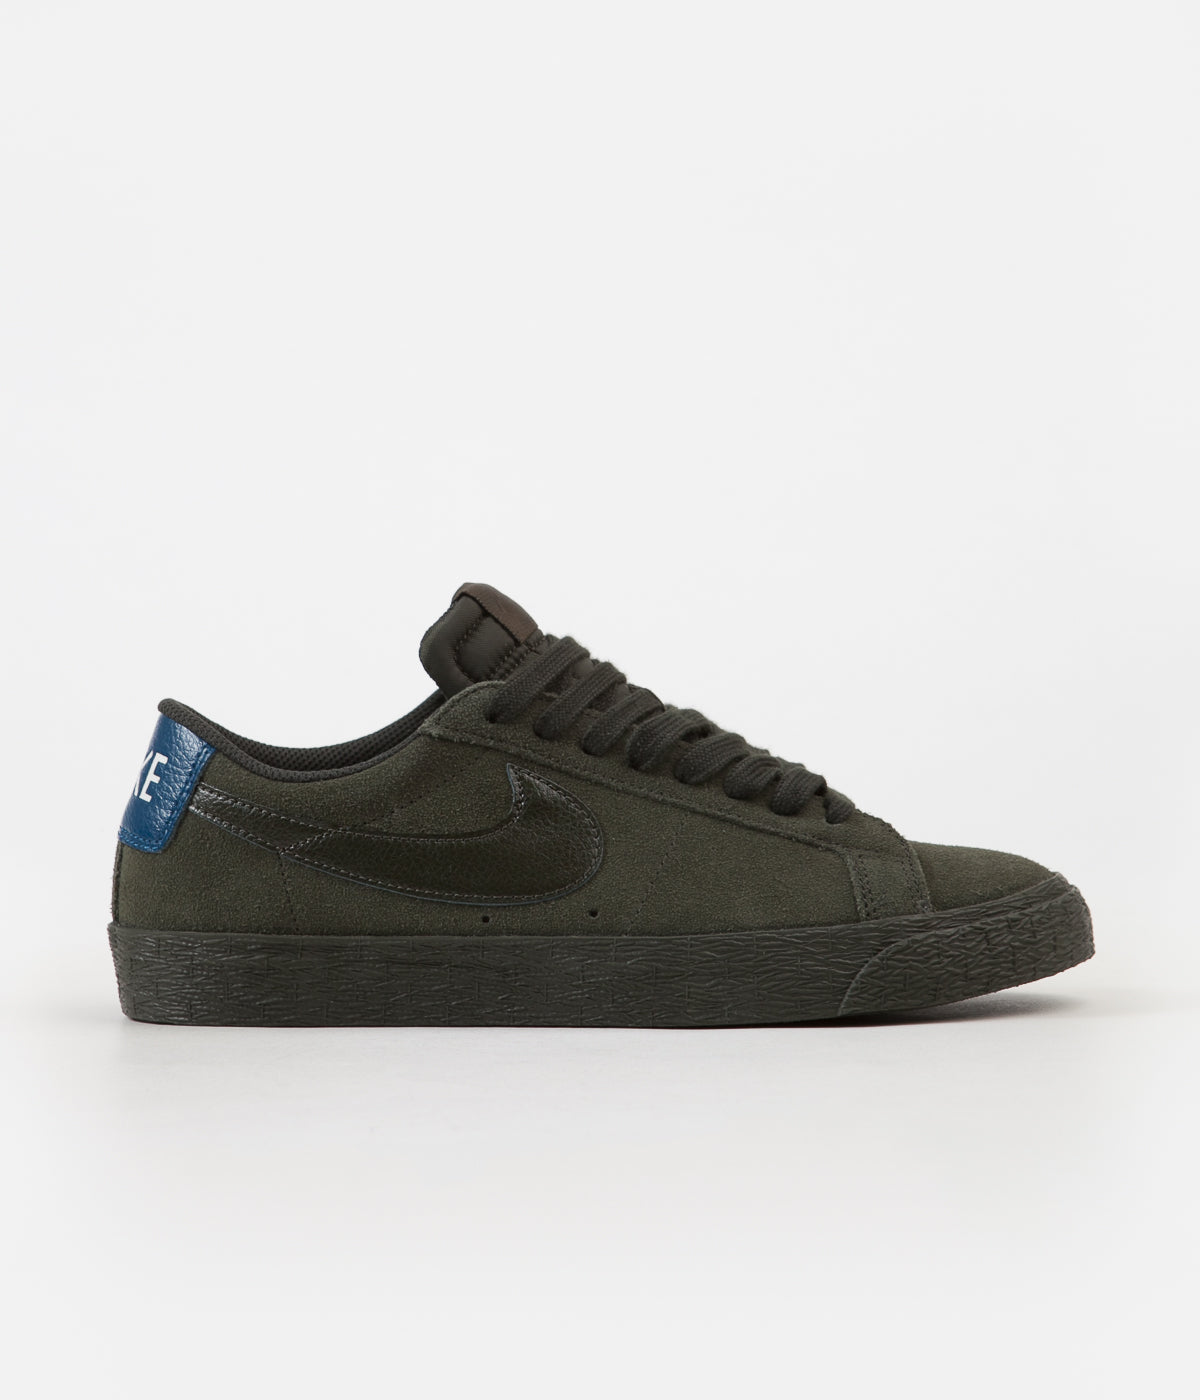 6a5eb19454f3 ... Nike SB Blazer Low Shoes - Sequoia   Sequoia - Blue Force ...